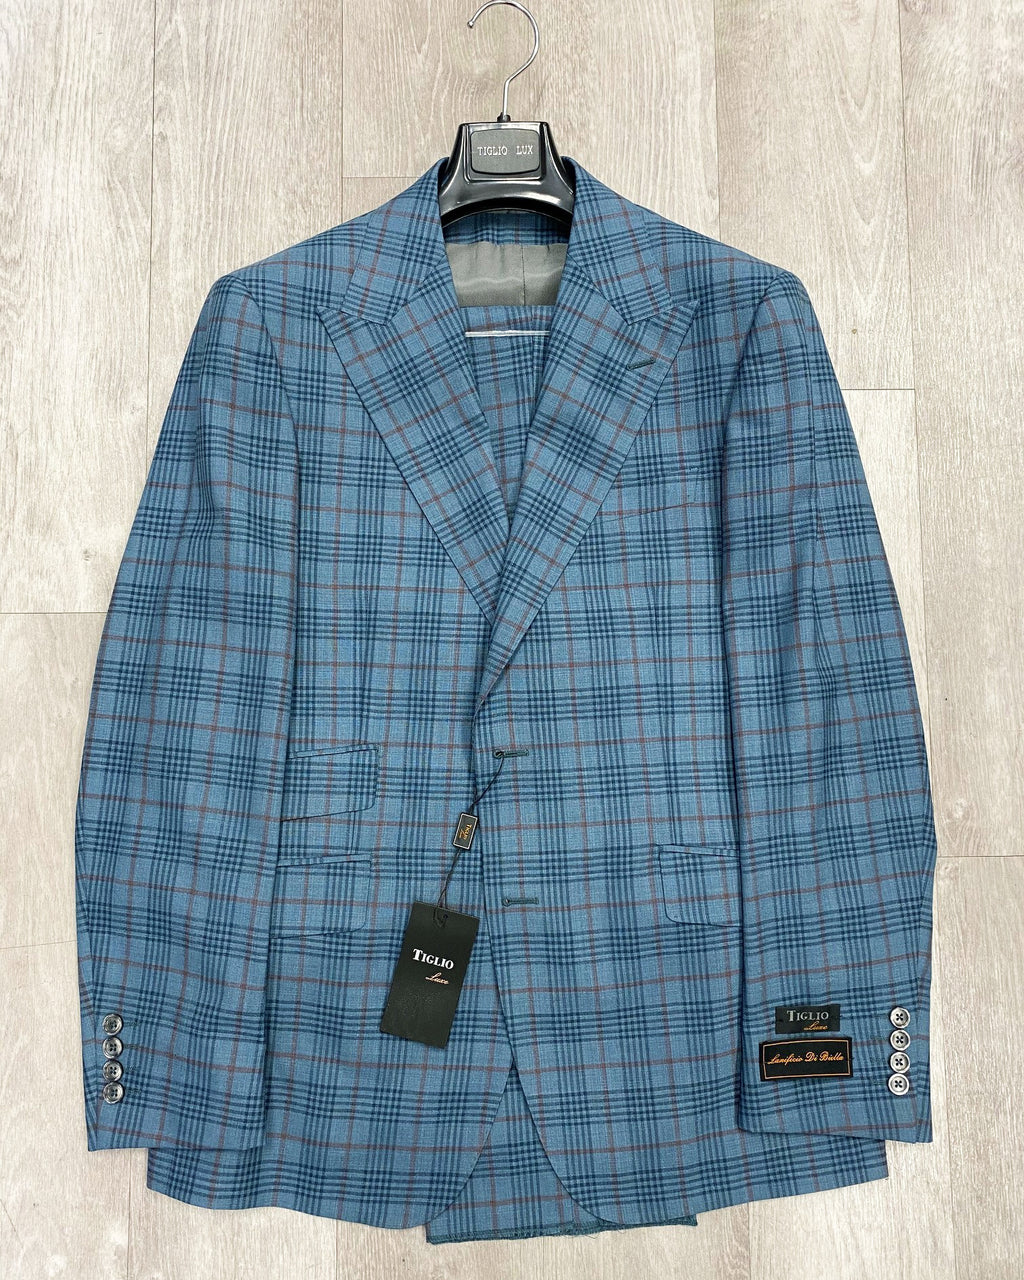 Tiglio Luxe Prosecco Teal Blue & Burgundy Window Pane Modern Fit, TLS20048/5, Pure Wool Suit & Vest